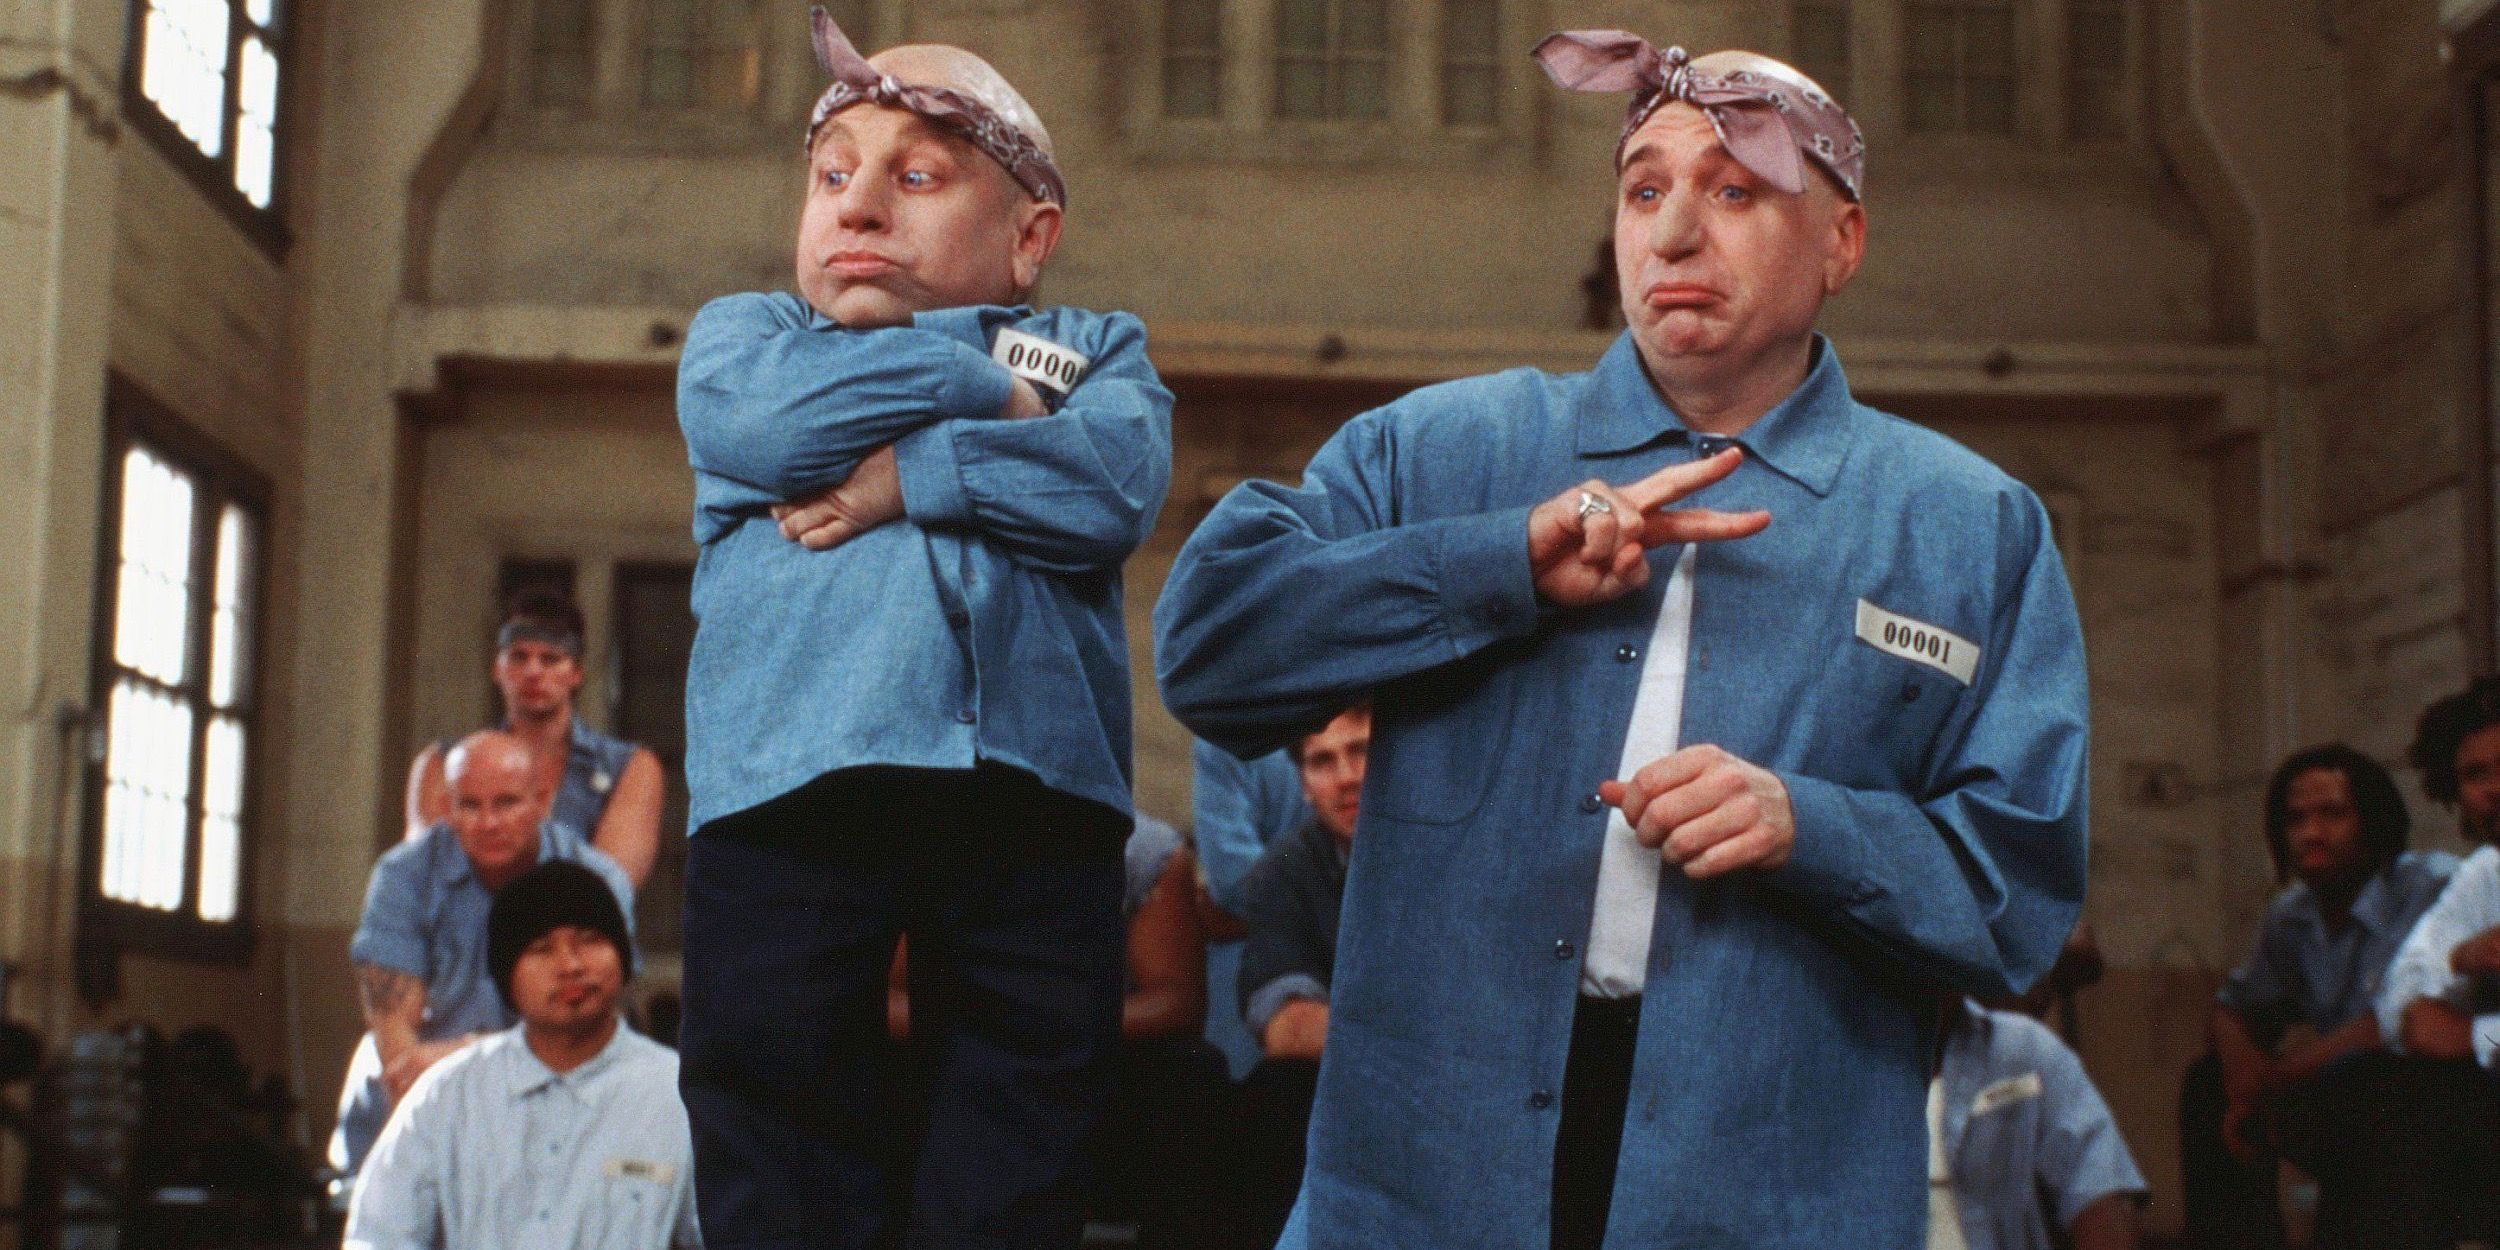 https://static1.srcdn.com/wordpress/wp-content/uploads/2018/10/Verne-Troyer-and-Mike-Myers-in-Austin-Powers-in-Goldmember.jpg